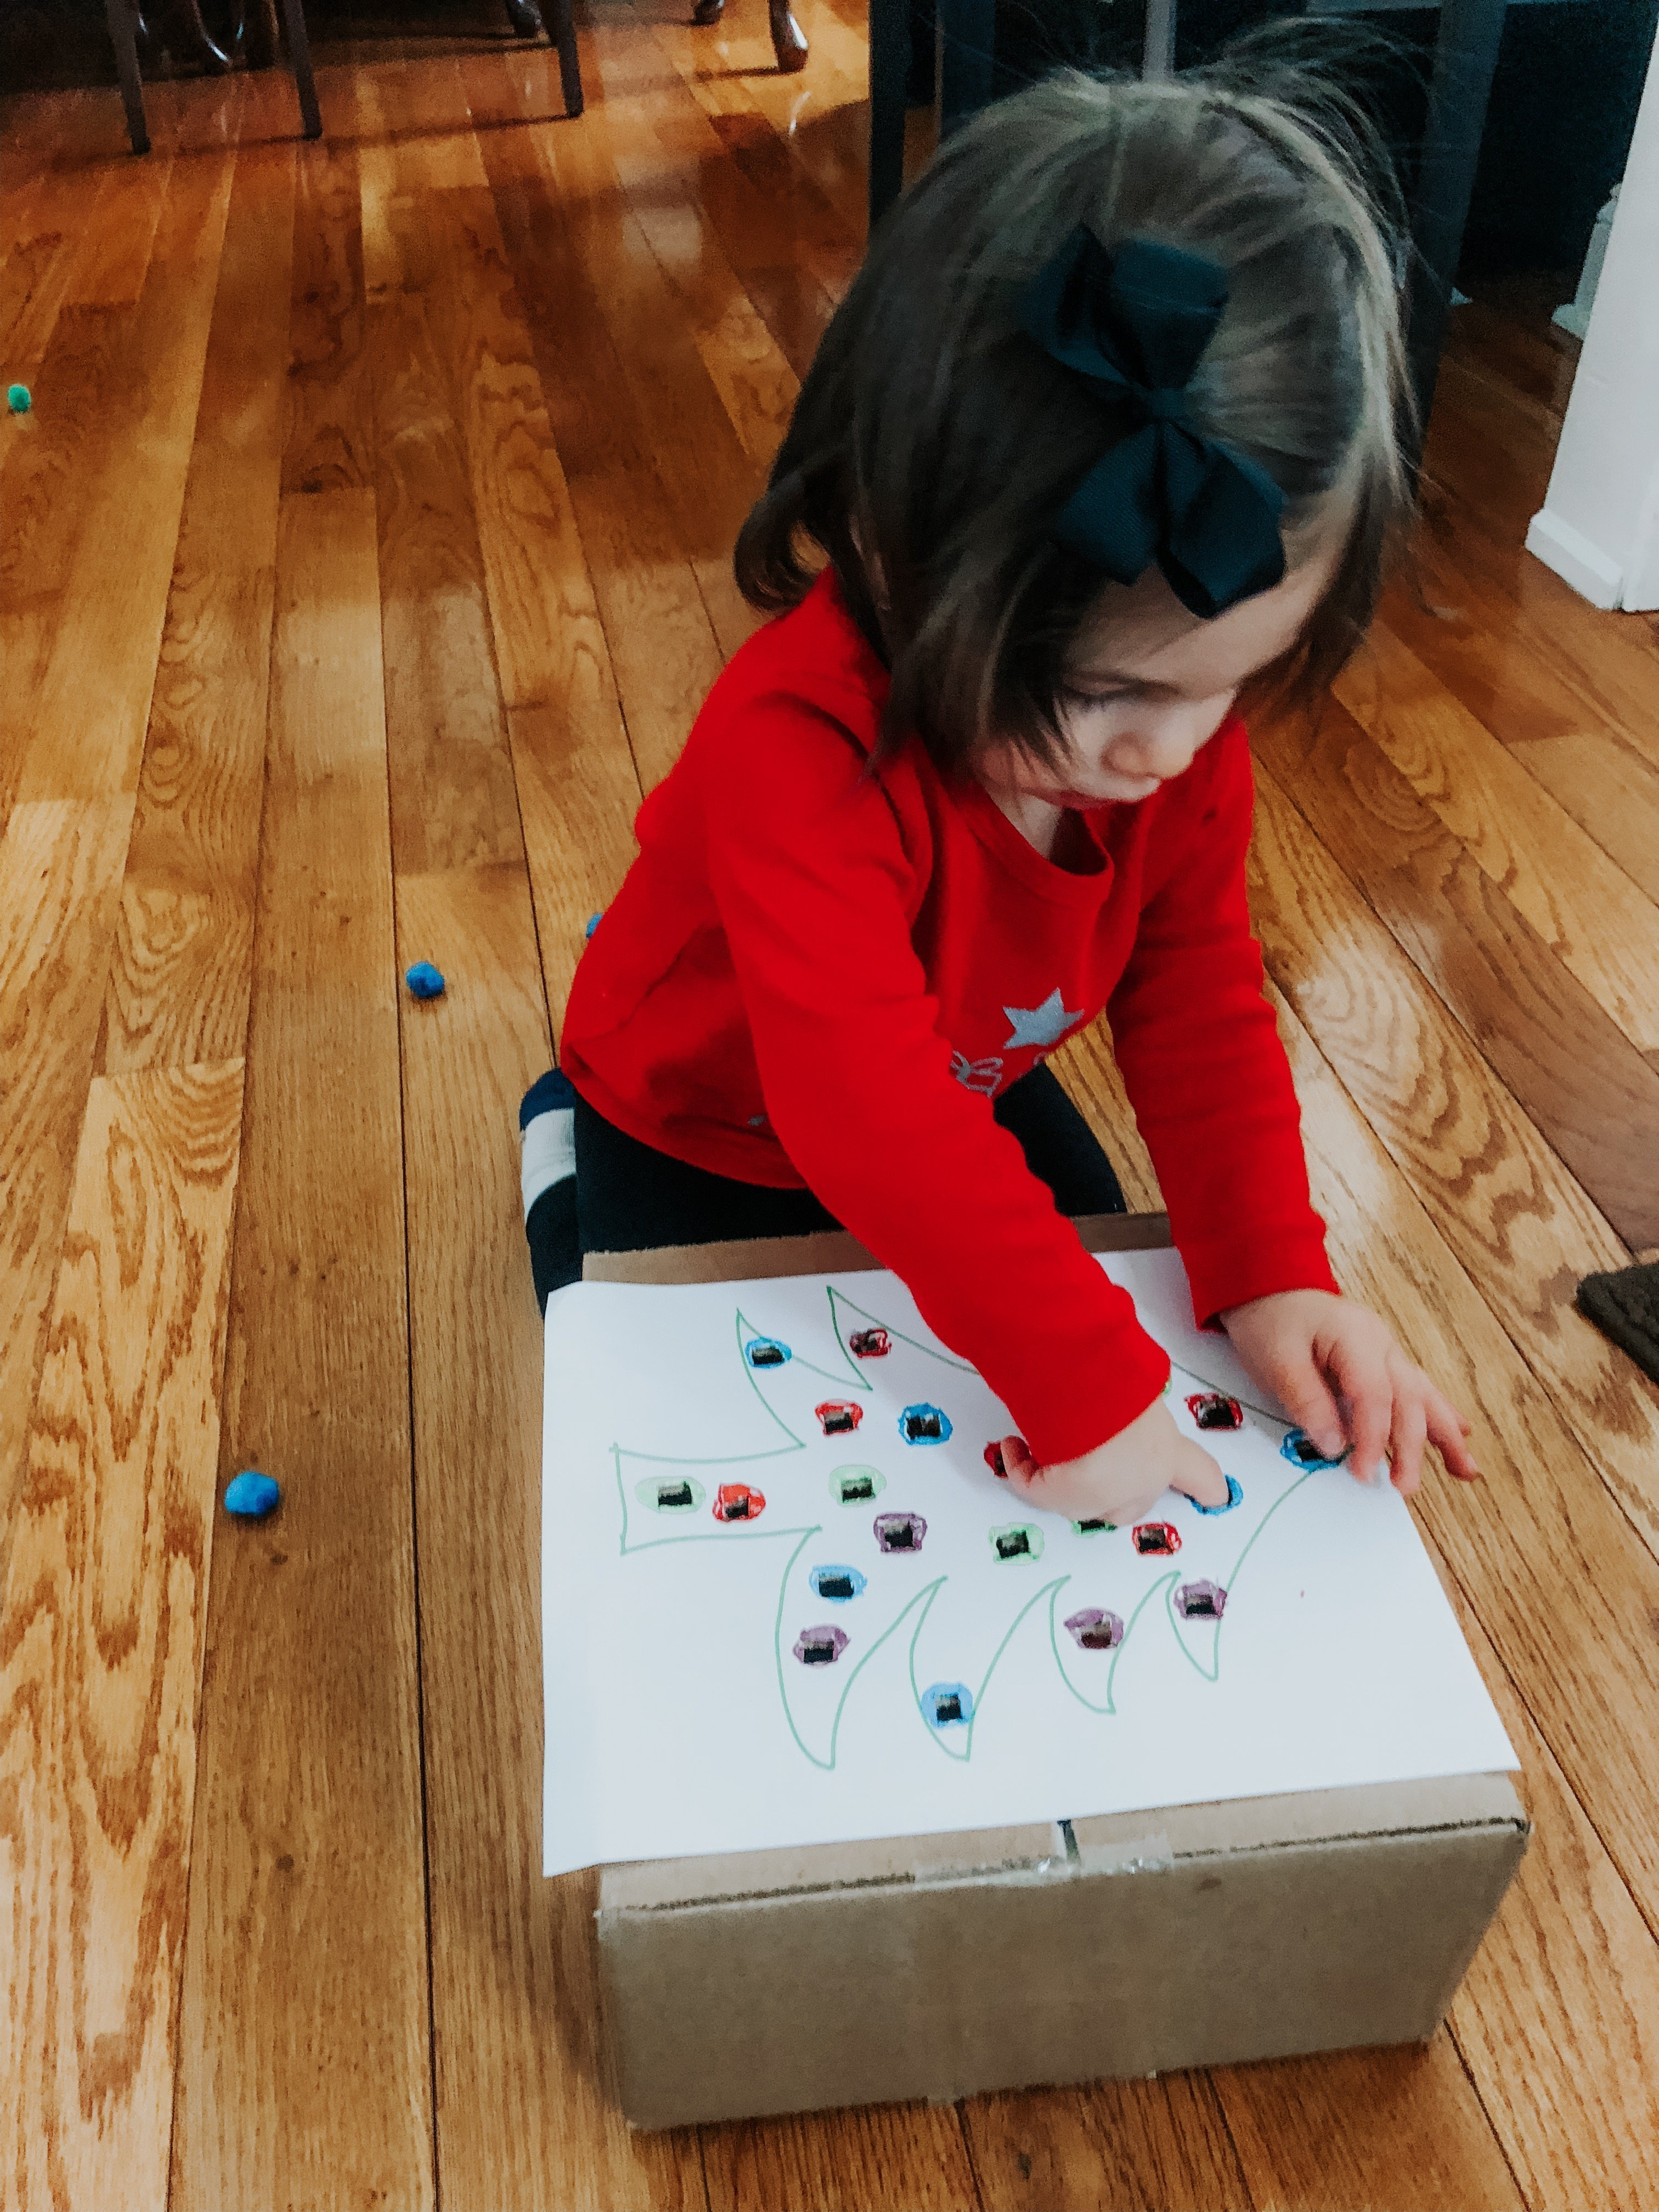 Christmas Pom Pom Push is a fine motor activity for your baby or toddler to help improve hand & finger skills during a fun holiday activity.